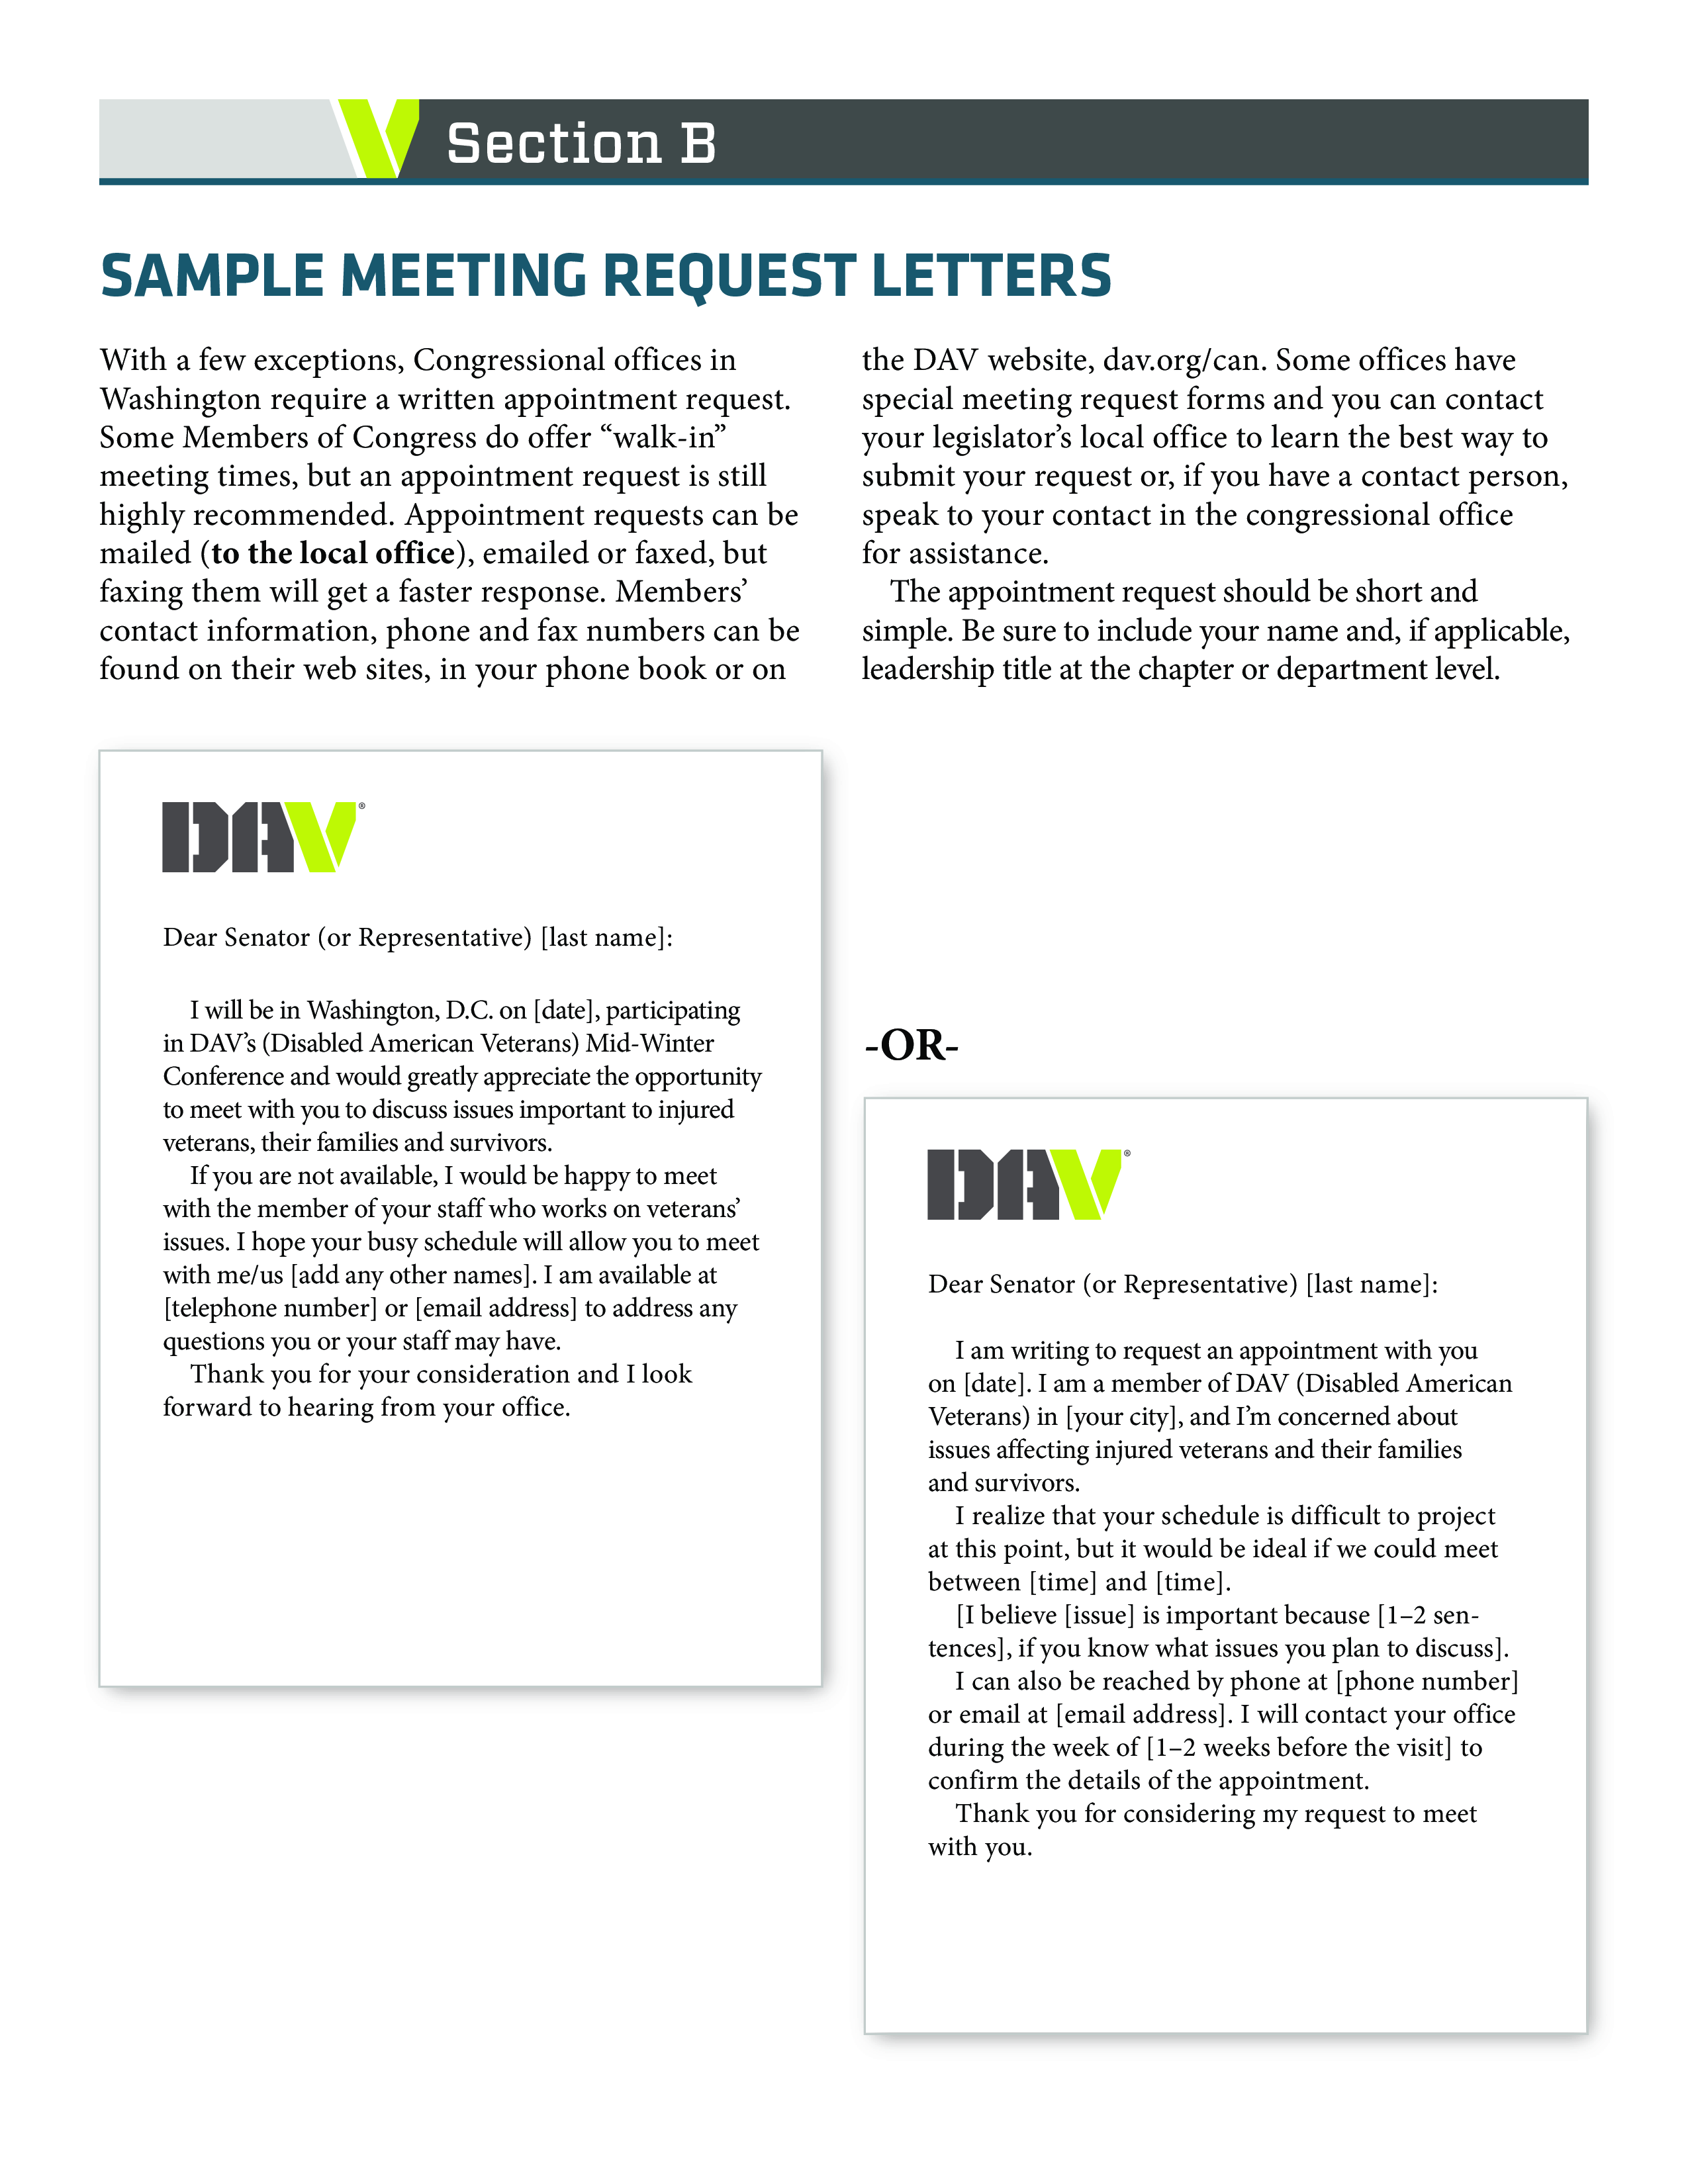 Free Business Meeting Appointment Letter Templates At